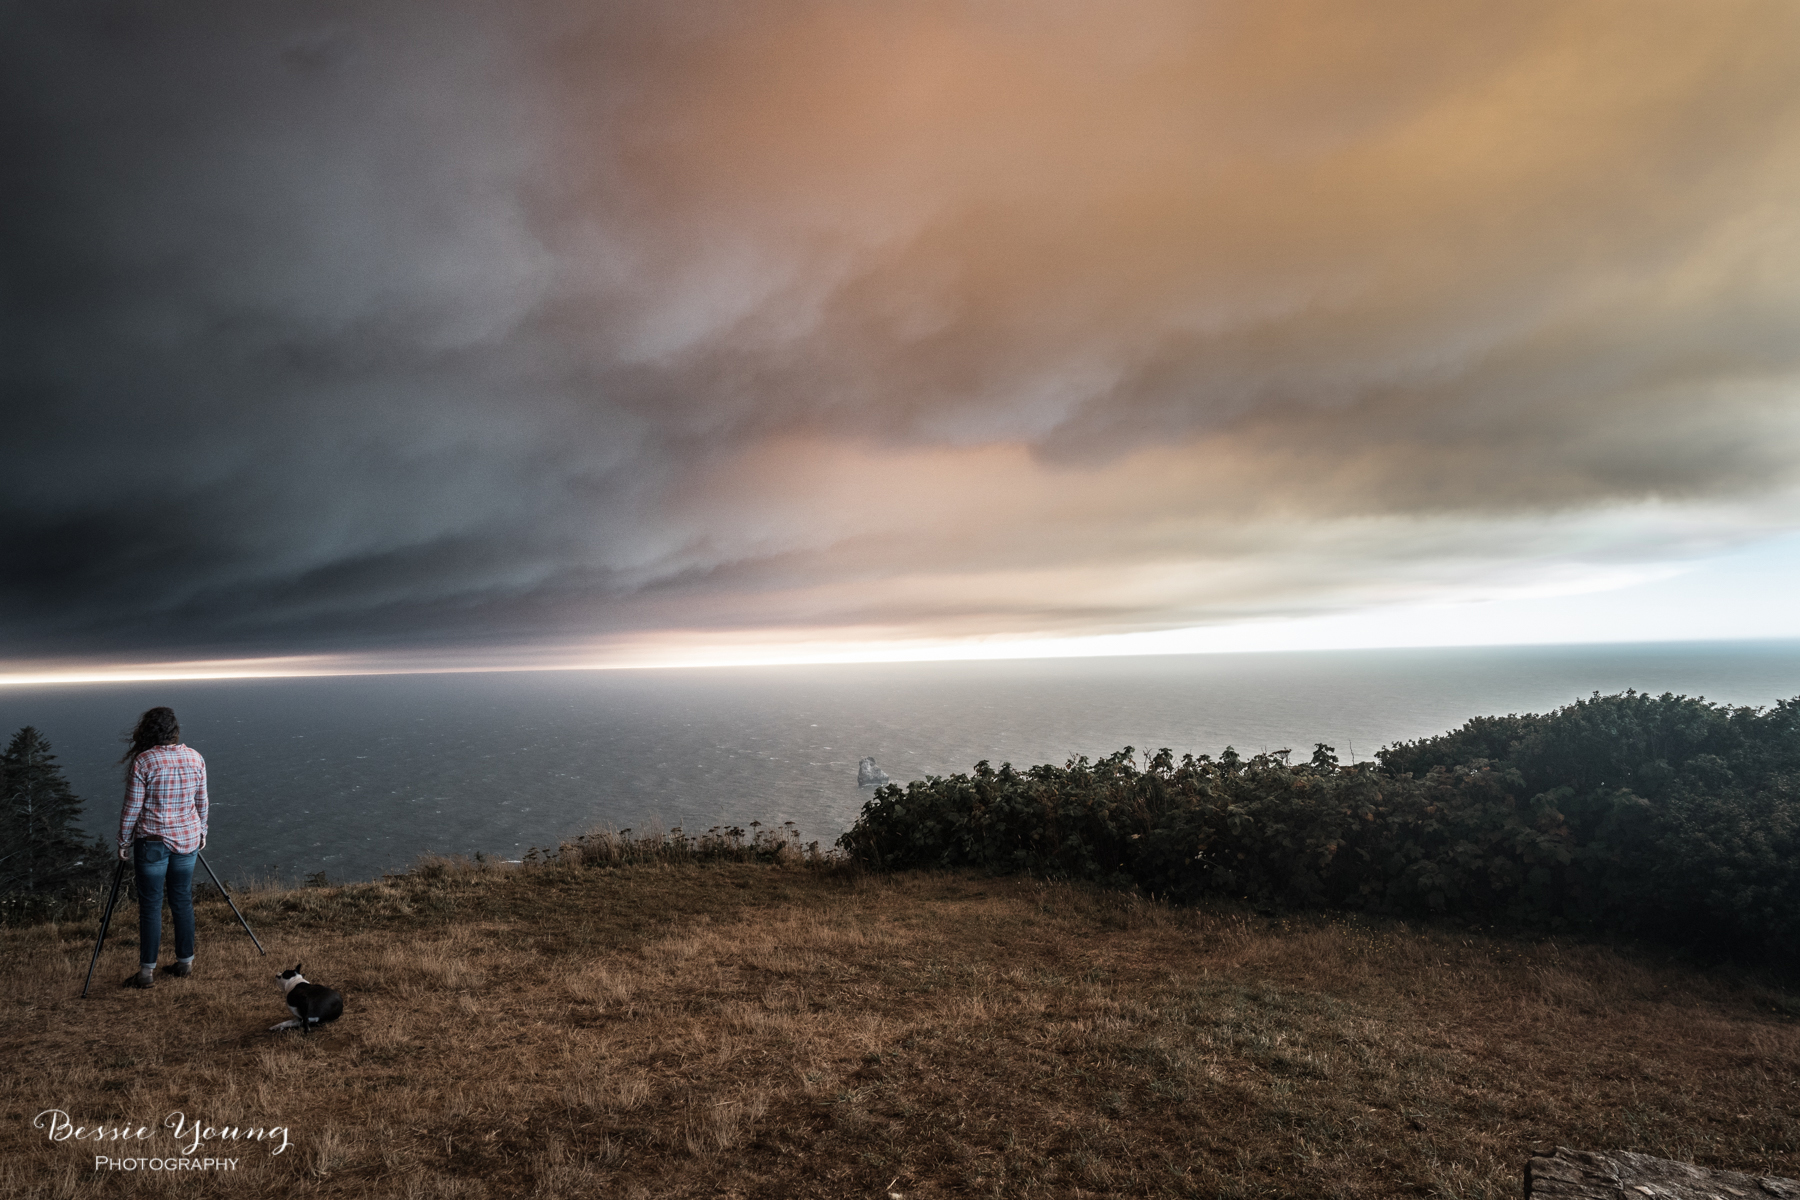 Chetco Bar Fire Brookings Oregon 2017 - Bessie Young Photography-24.jpg